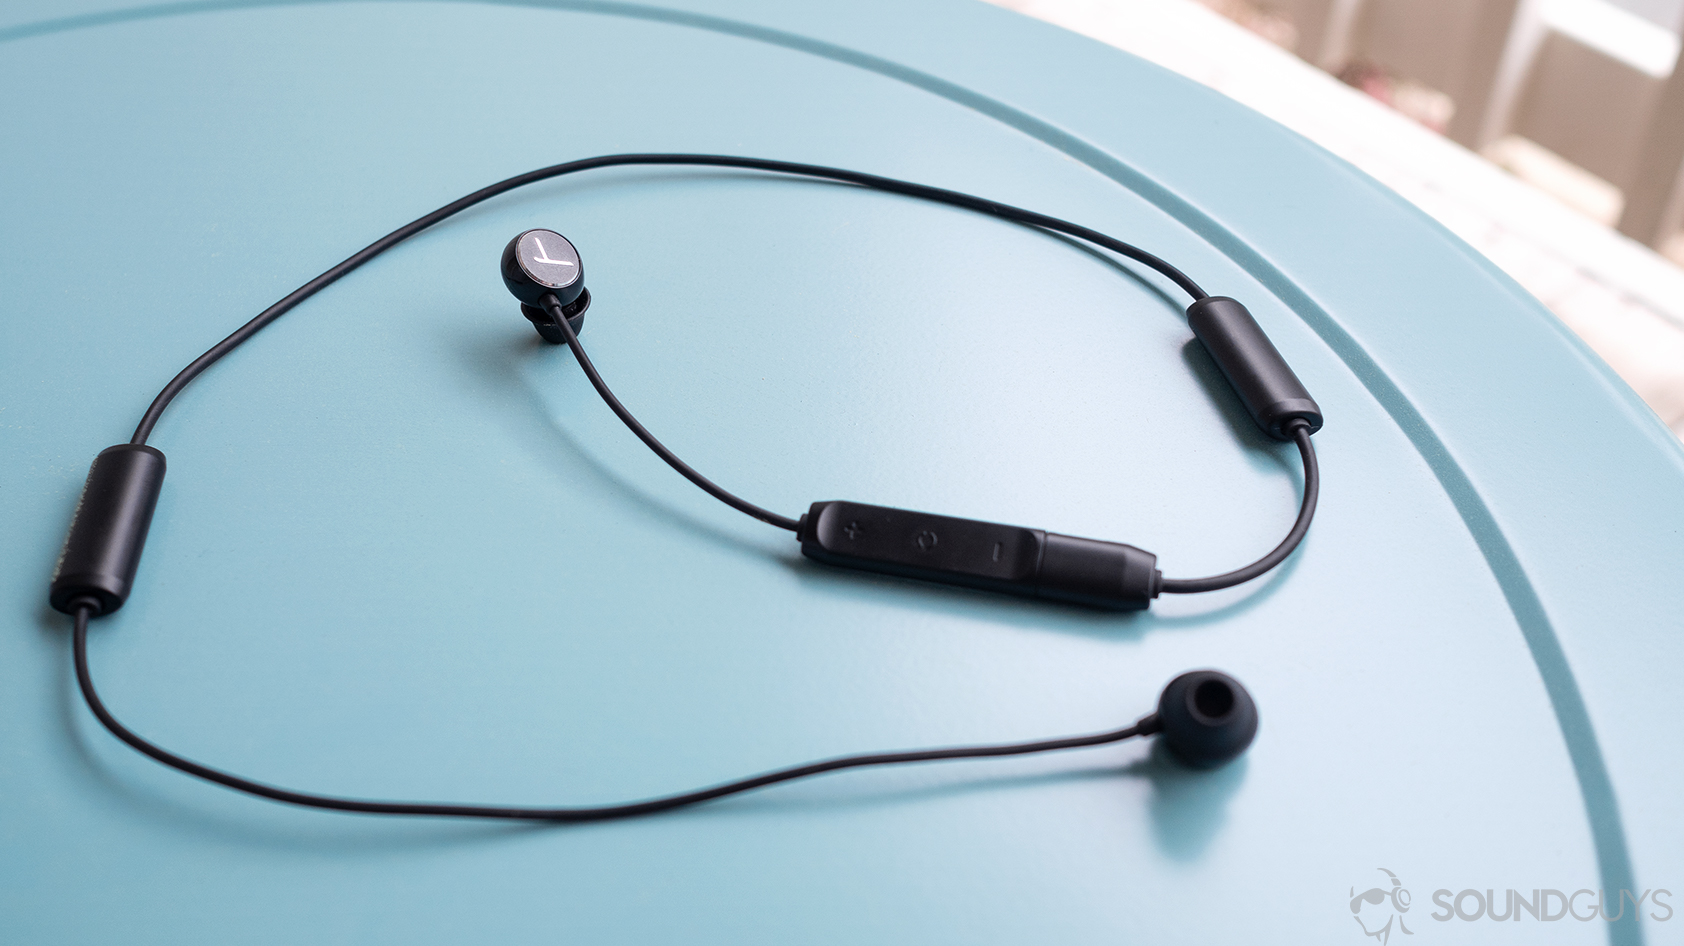 hight resolution of best wireless earbuds beyerdynamic blue byrd full image of the earbuds and cable